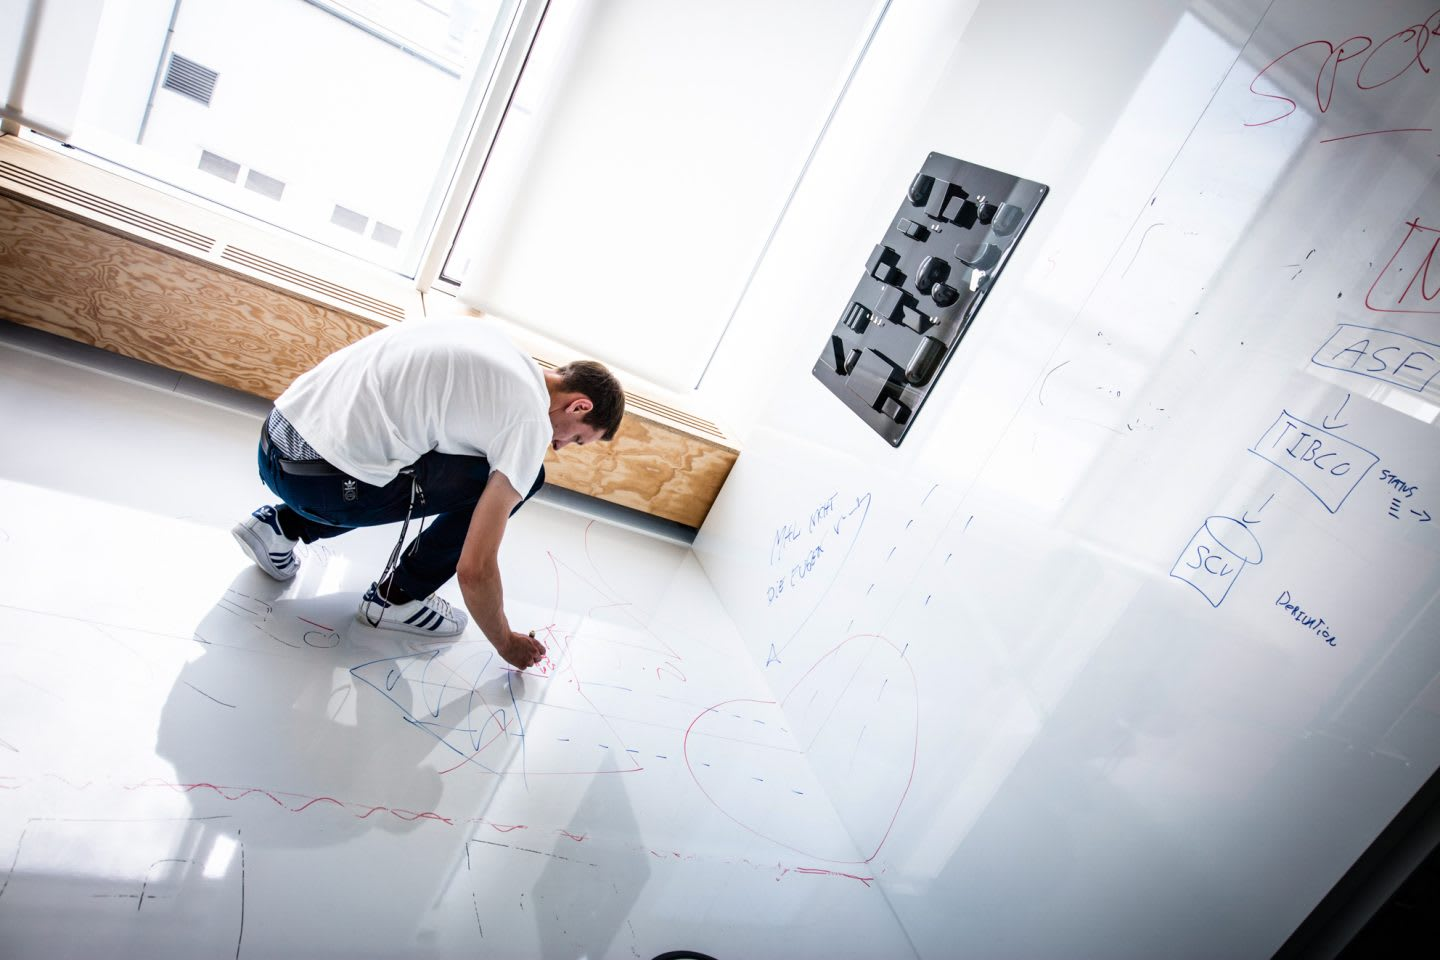 Man wearing white t-shirt writing with whiteboard markers on whiteboard walls and floor, creativity, thinking, brainstorm, ideas, adidas, workplace, employee